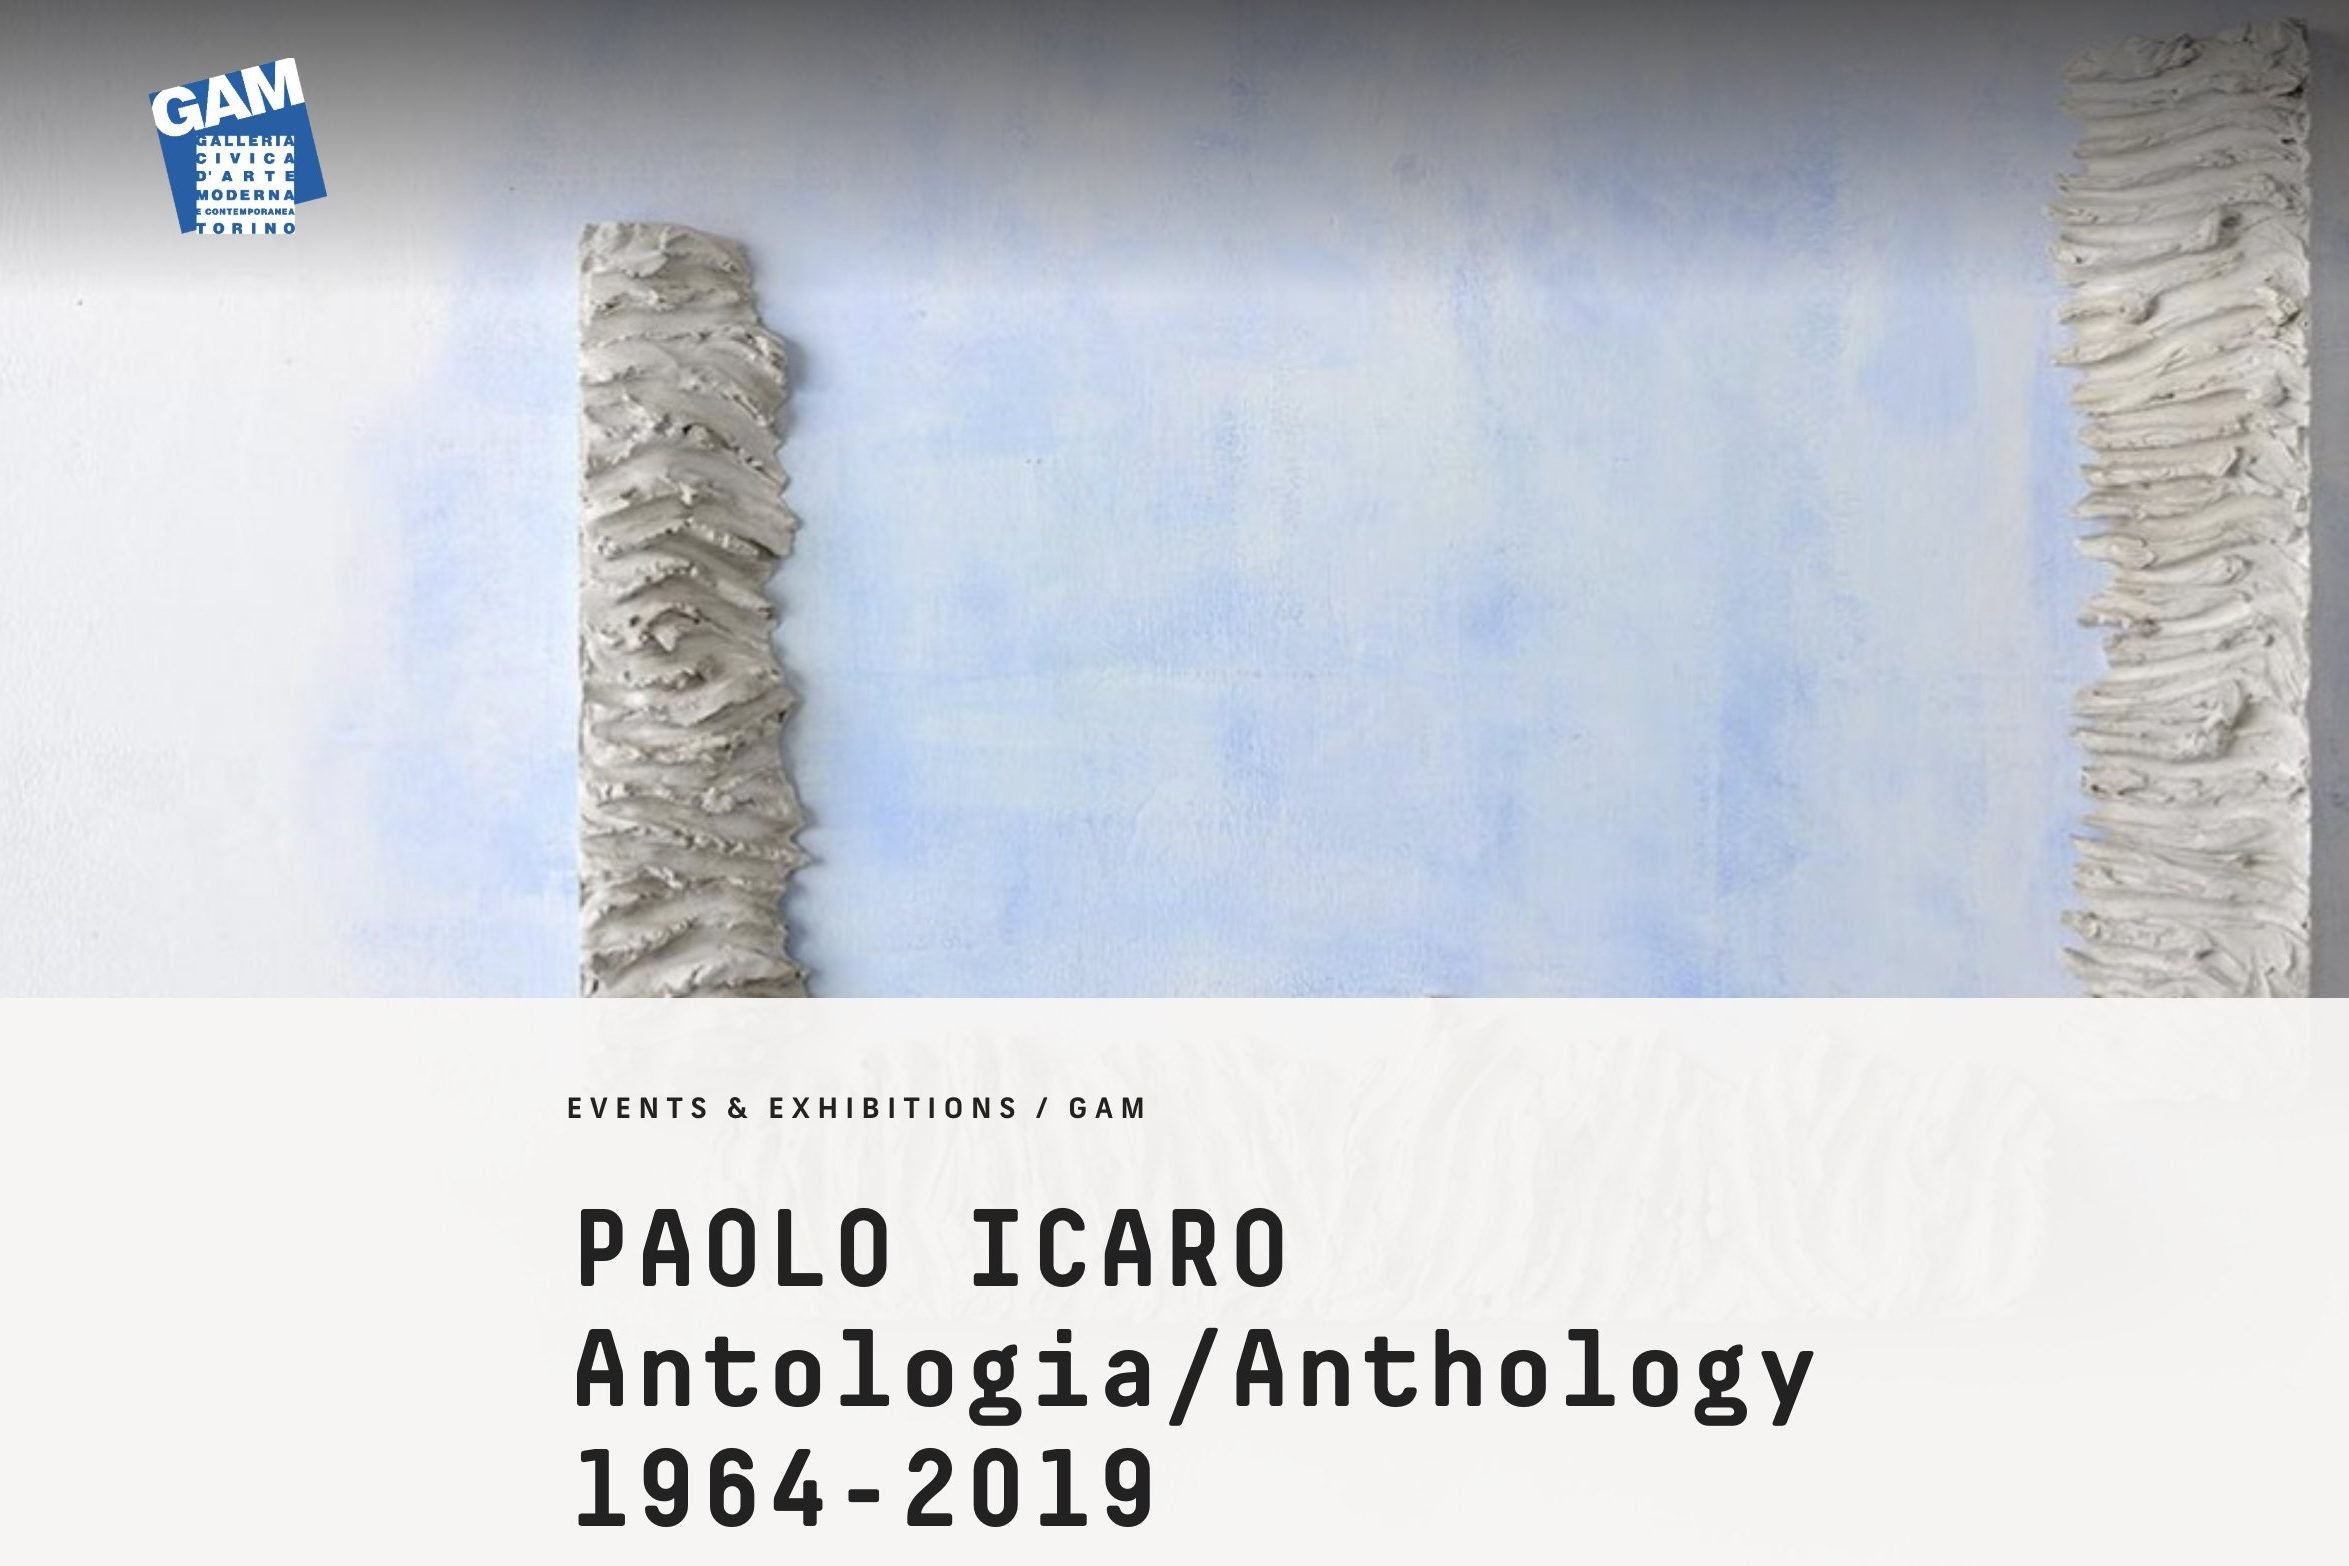 Exhibition of Paolo Icaro at the Galleria Civica dArte Moderna in Turin